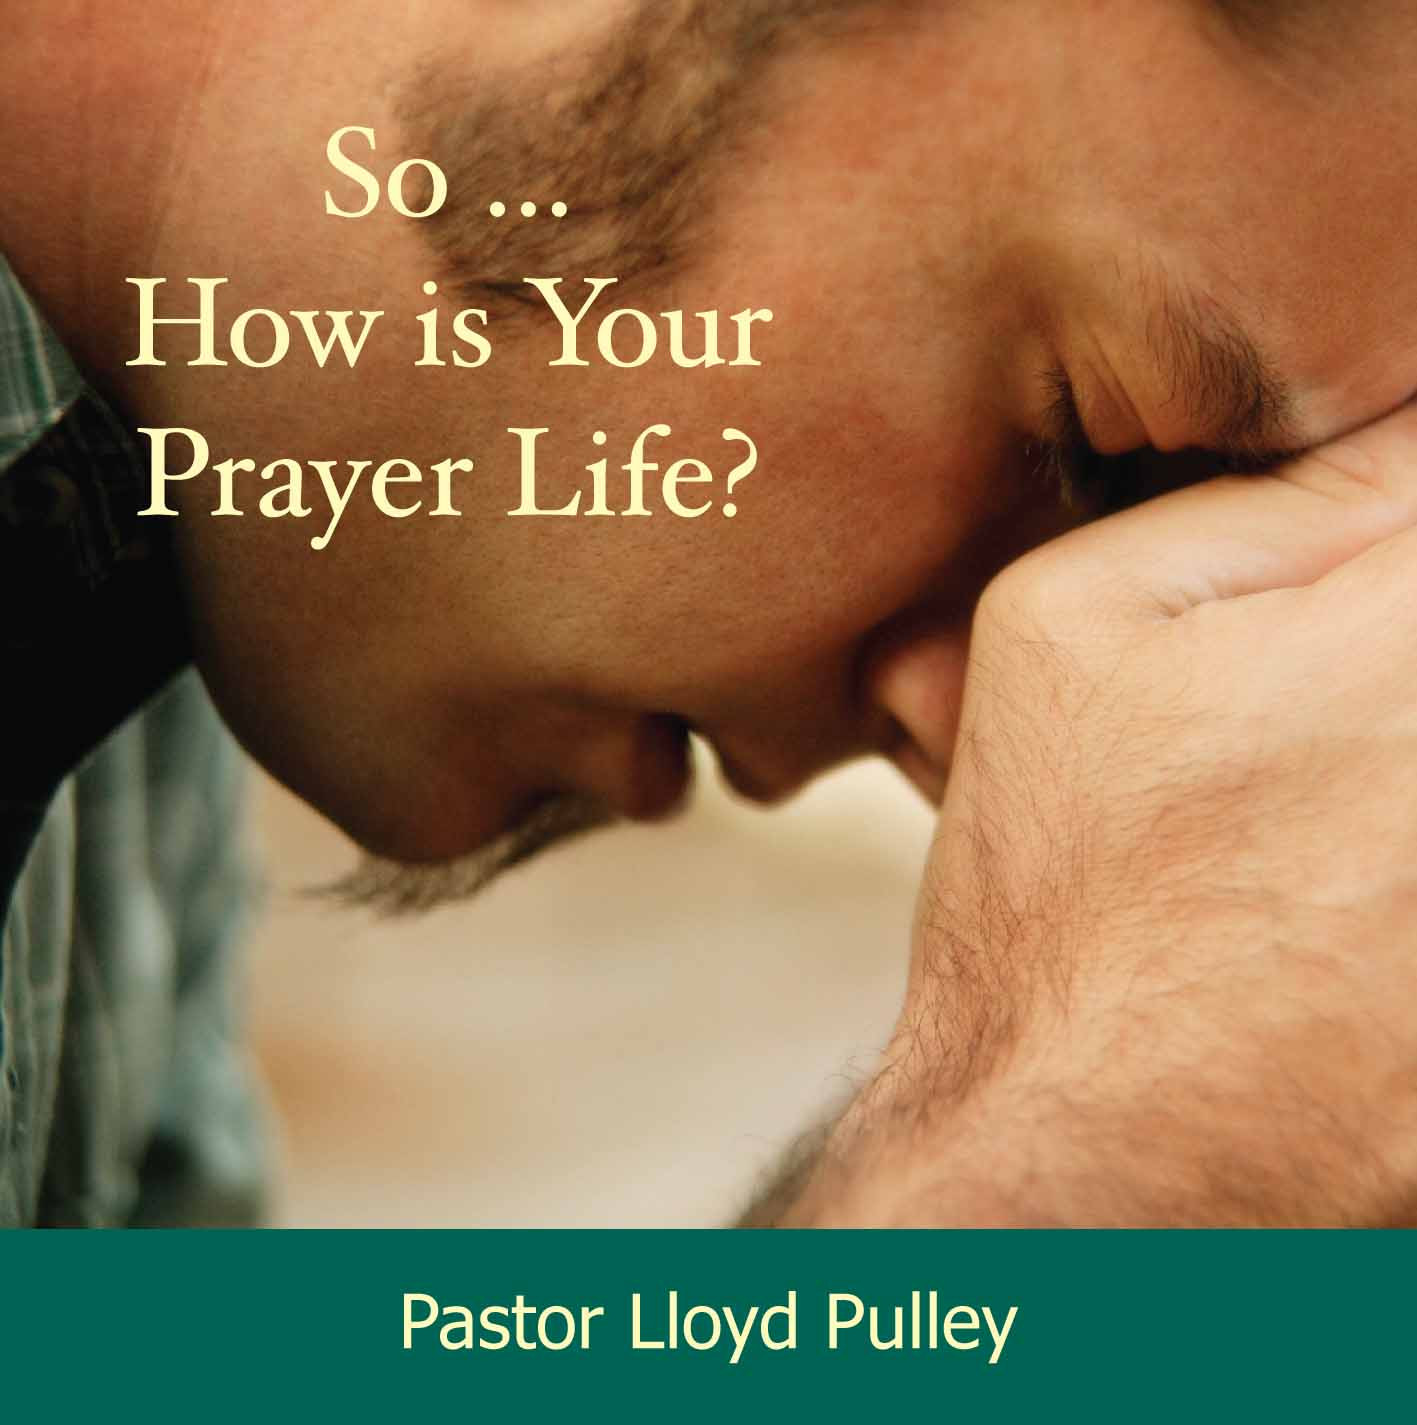 So How's Your Prayer Life?